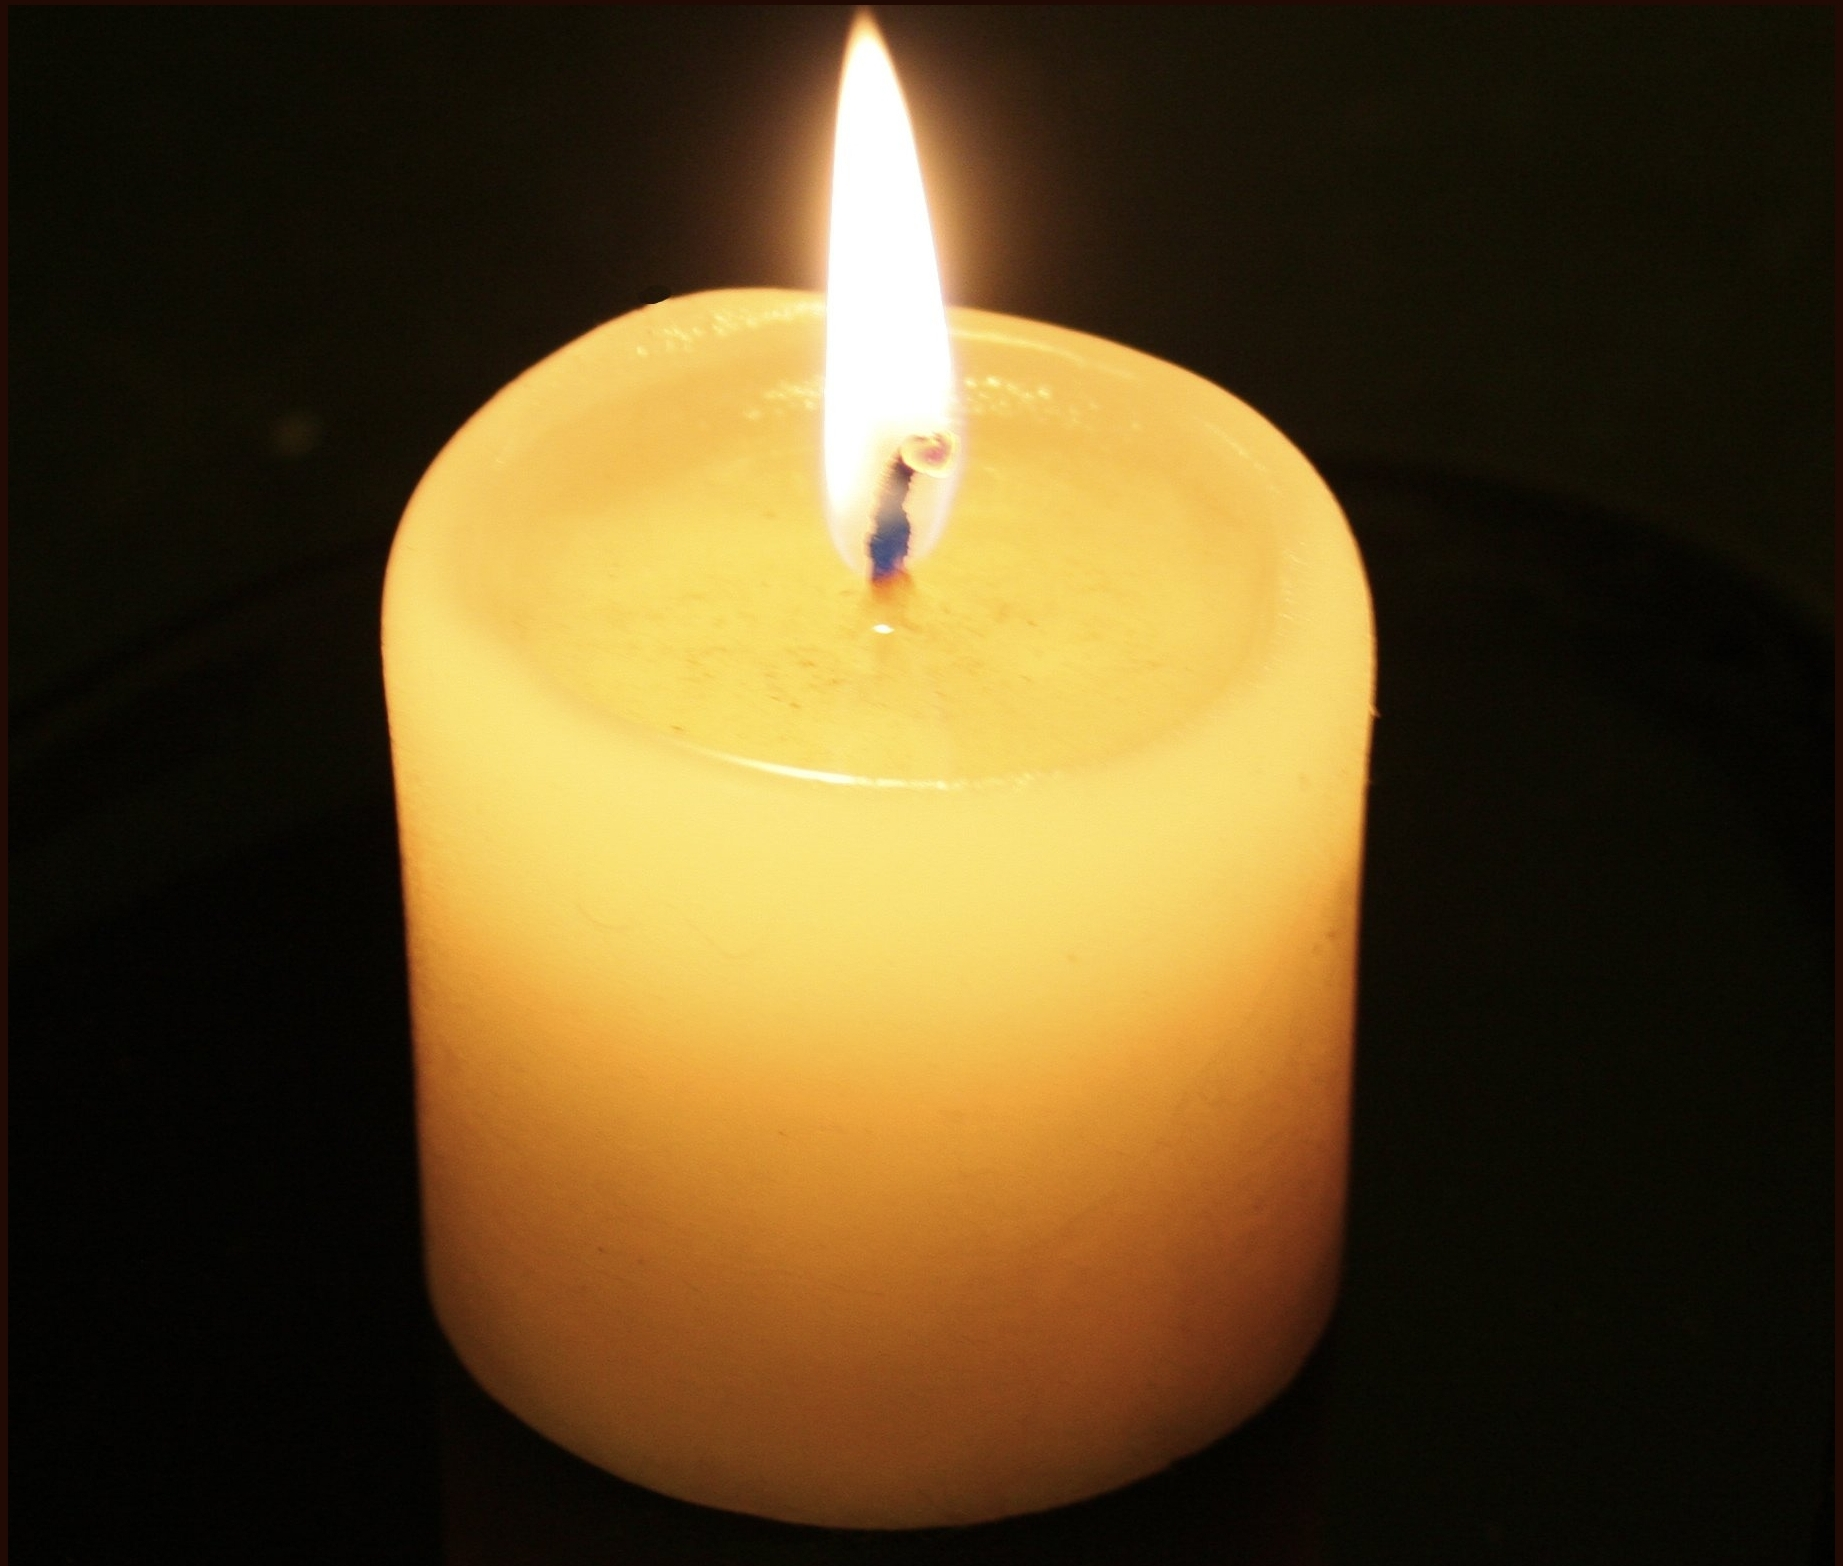 File:Candle-flame-no-reflection.jpg - Wikimedia Commons